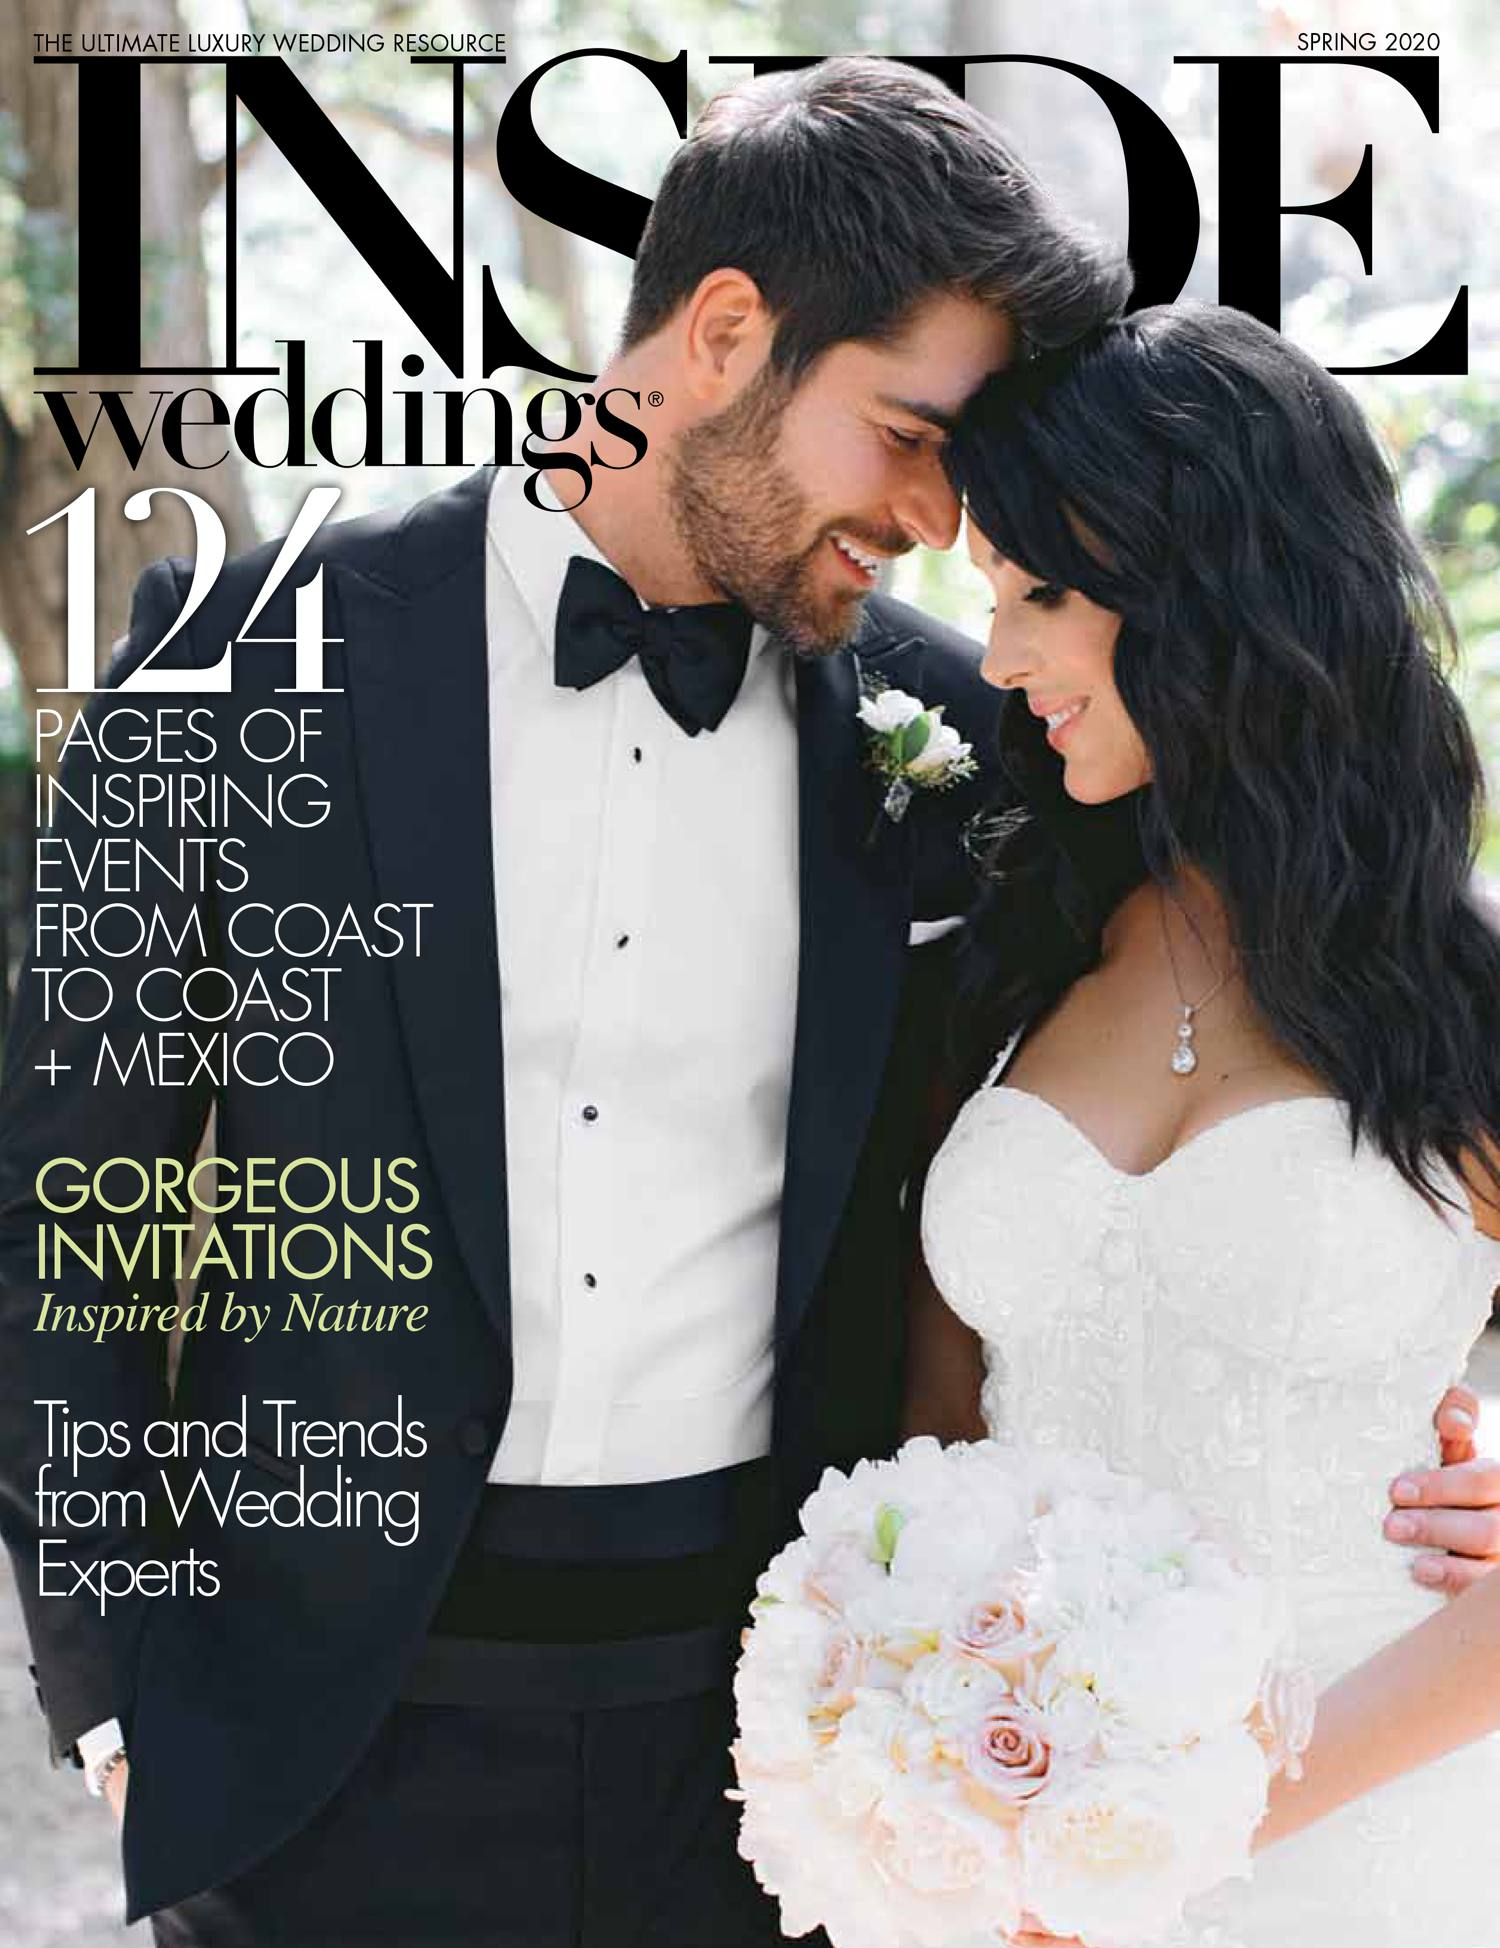 Published: Inside Weddings, Spring Issue 2020. Tanya and Charley